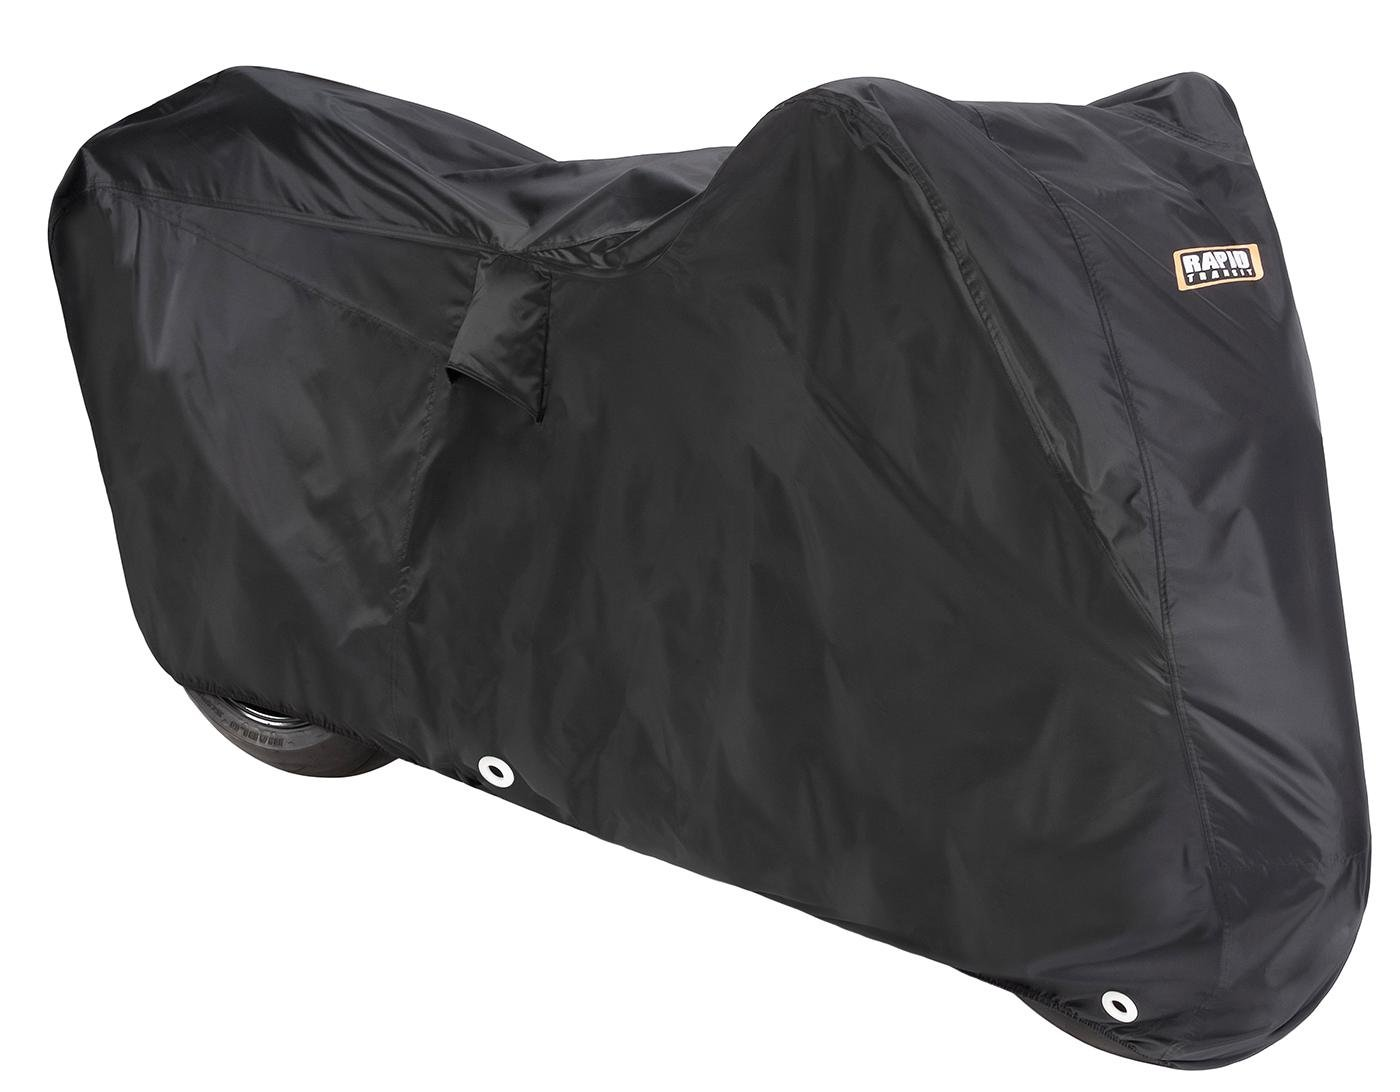 Rapid Transit 110 005 Deluxe Commuter Motorcycle Cover